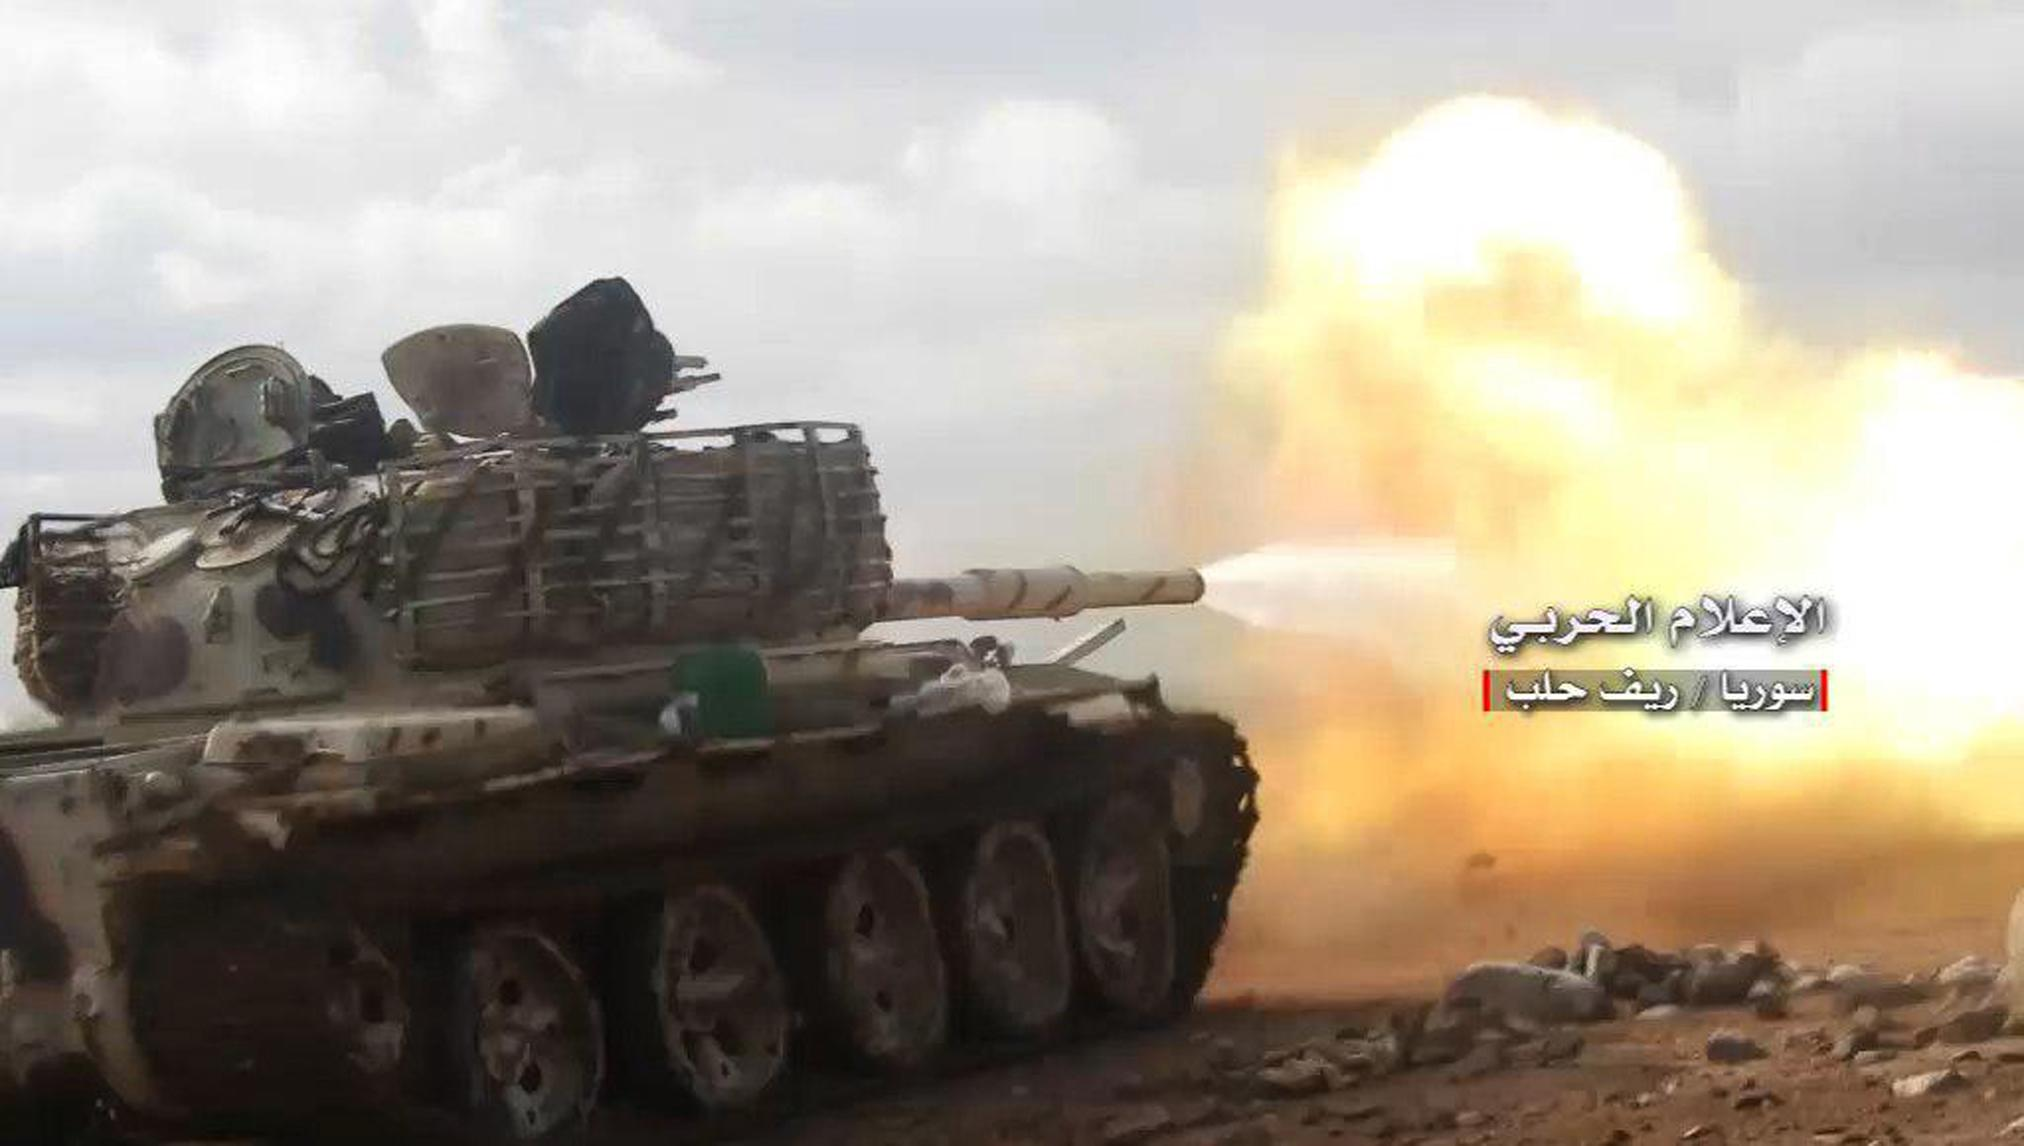 This photo provided on Saturday, Jan. 20, 2018, by the government-controlled Syrian Central Military Media, shows a Syrian government forces tank firing during a battle against the Syrian opposition fighters, in the southern Aleppo countryside, Syria. Syrian state TV says government forces have retaken a key air base in northwest Syria that was lost to rebels in 2015. The state broadcaster says Syrian troops fought their way into the strategic Abu Zuhour air base on Saturday, in Idlib province. (Syrian Central Military Media, via AP)